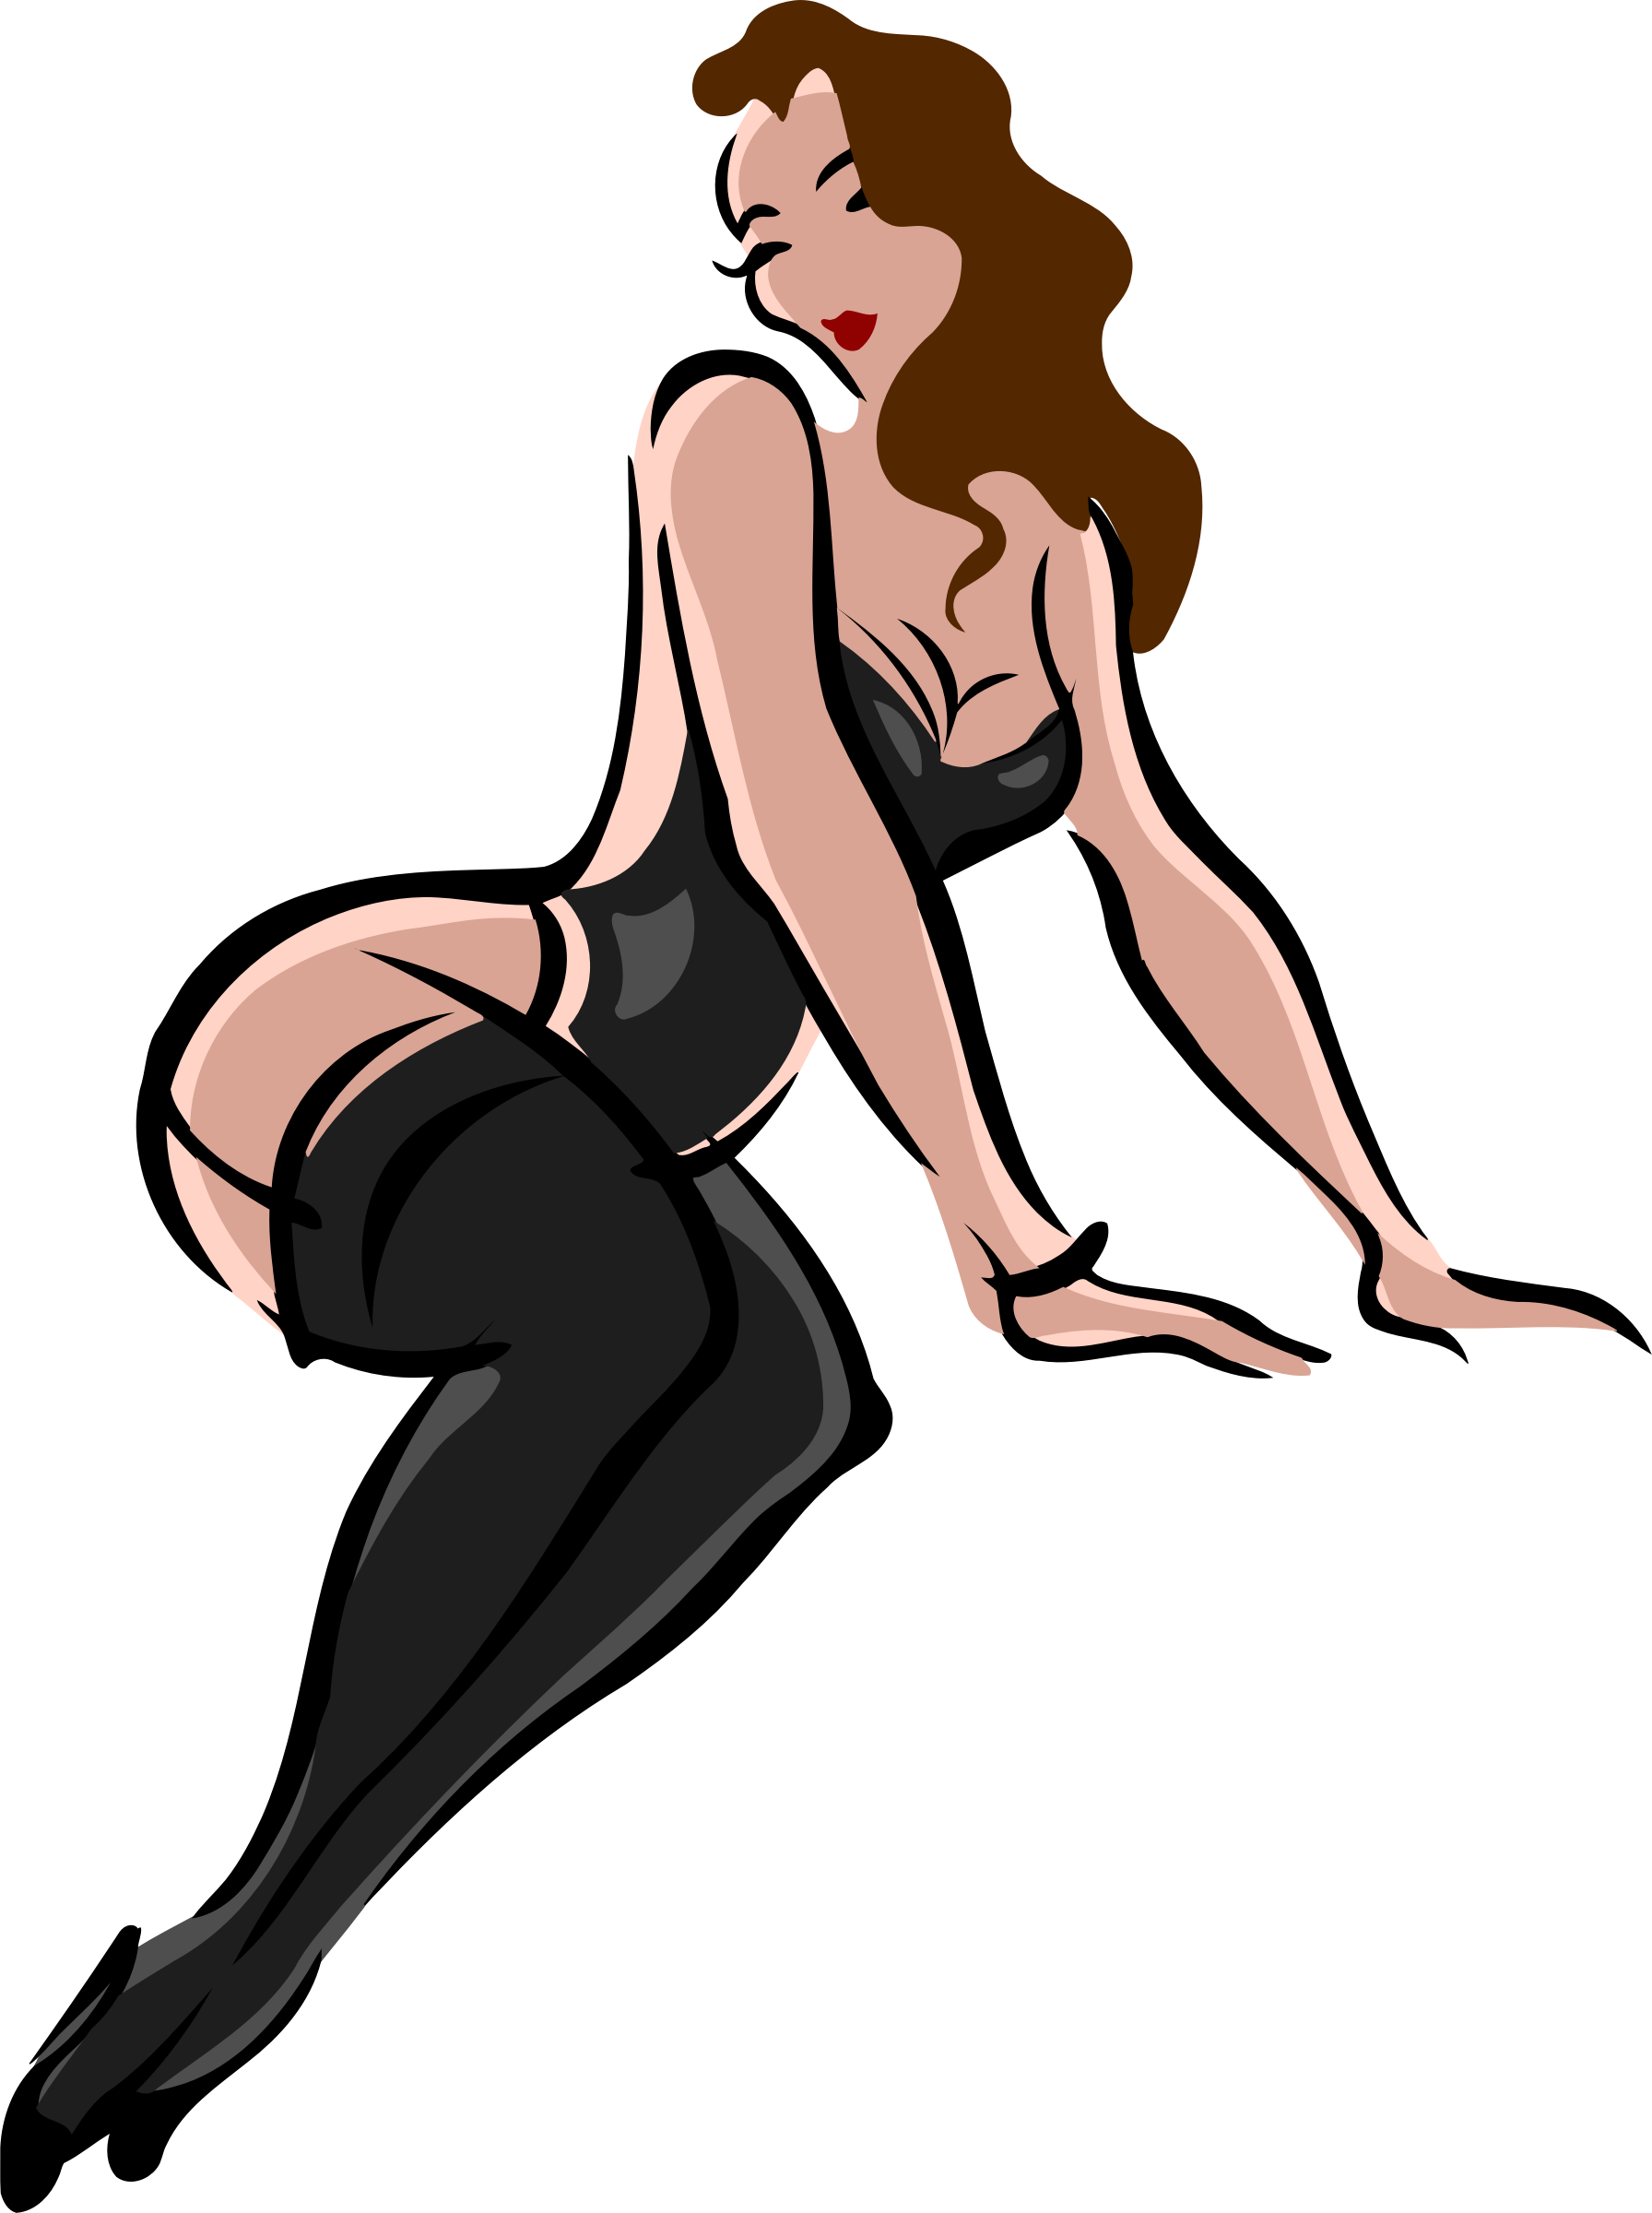 Lingerie model, light skin, brown hair, black clothes by Firkin